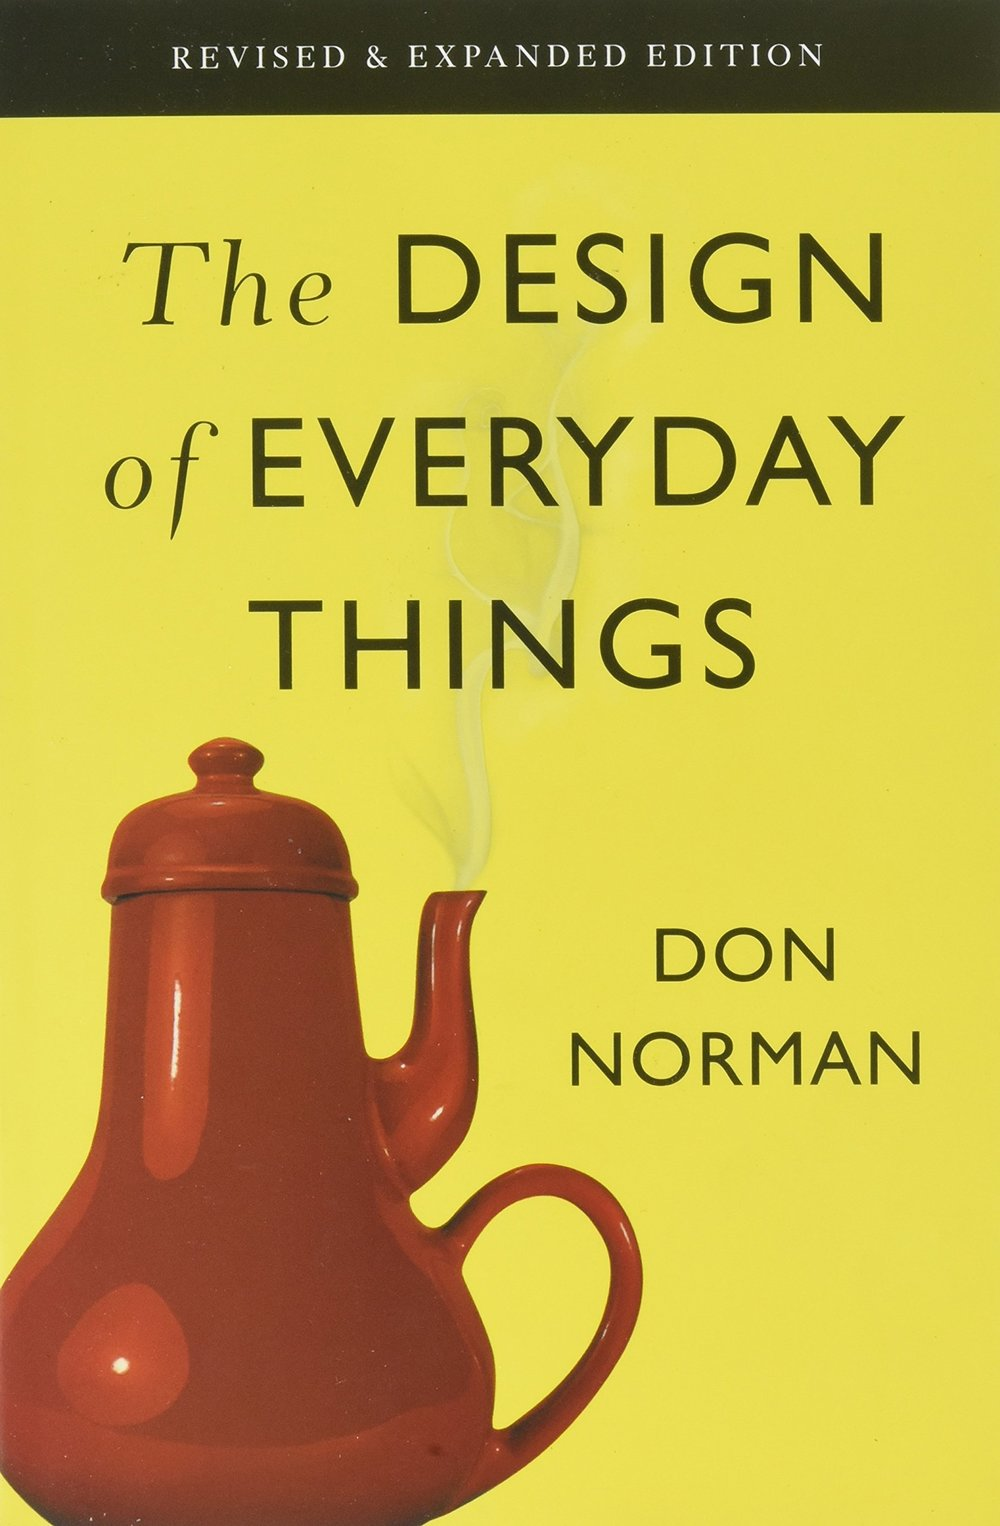 The Design of Everyday Things by Don Norman.jpg